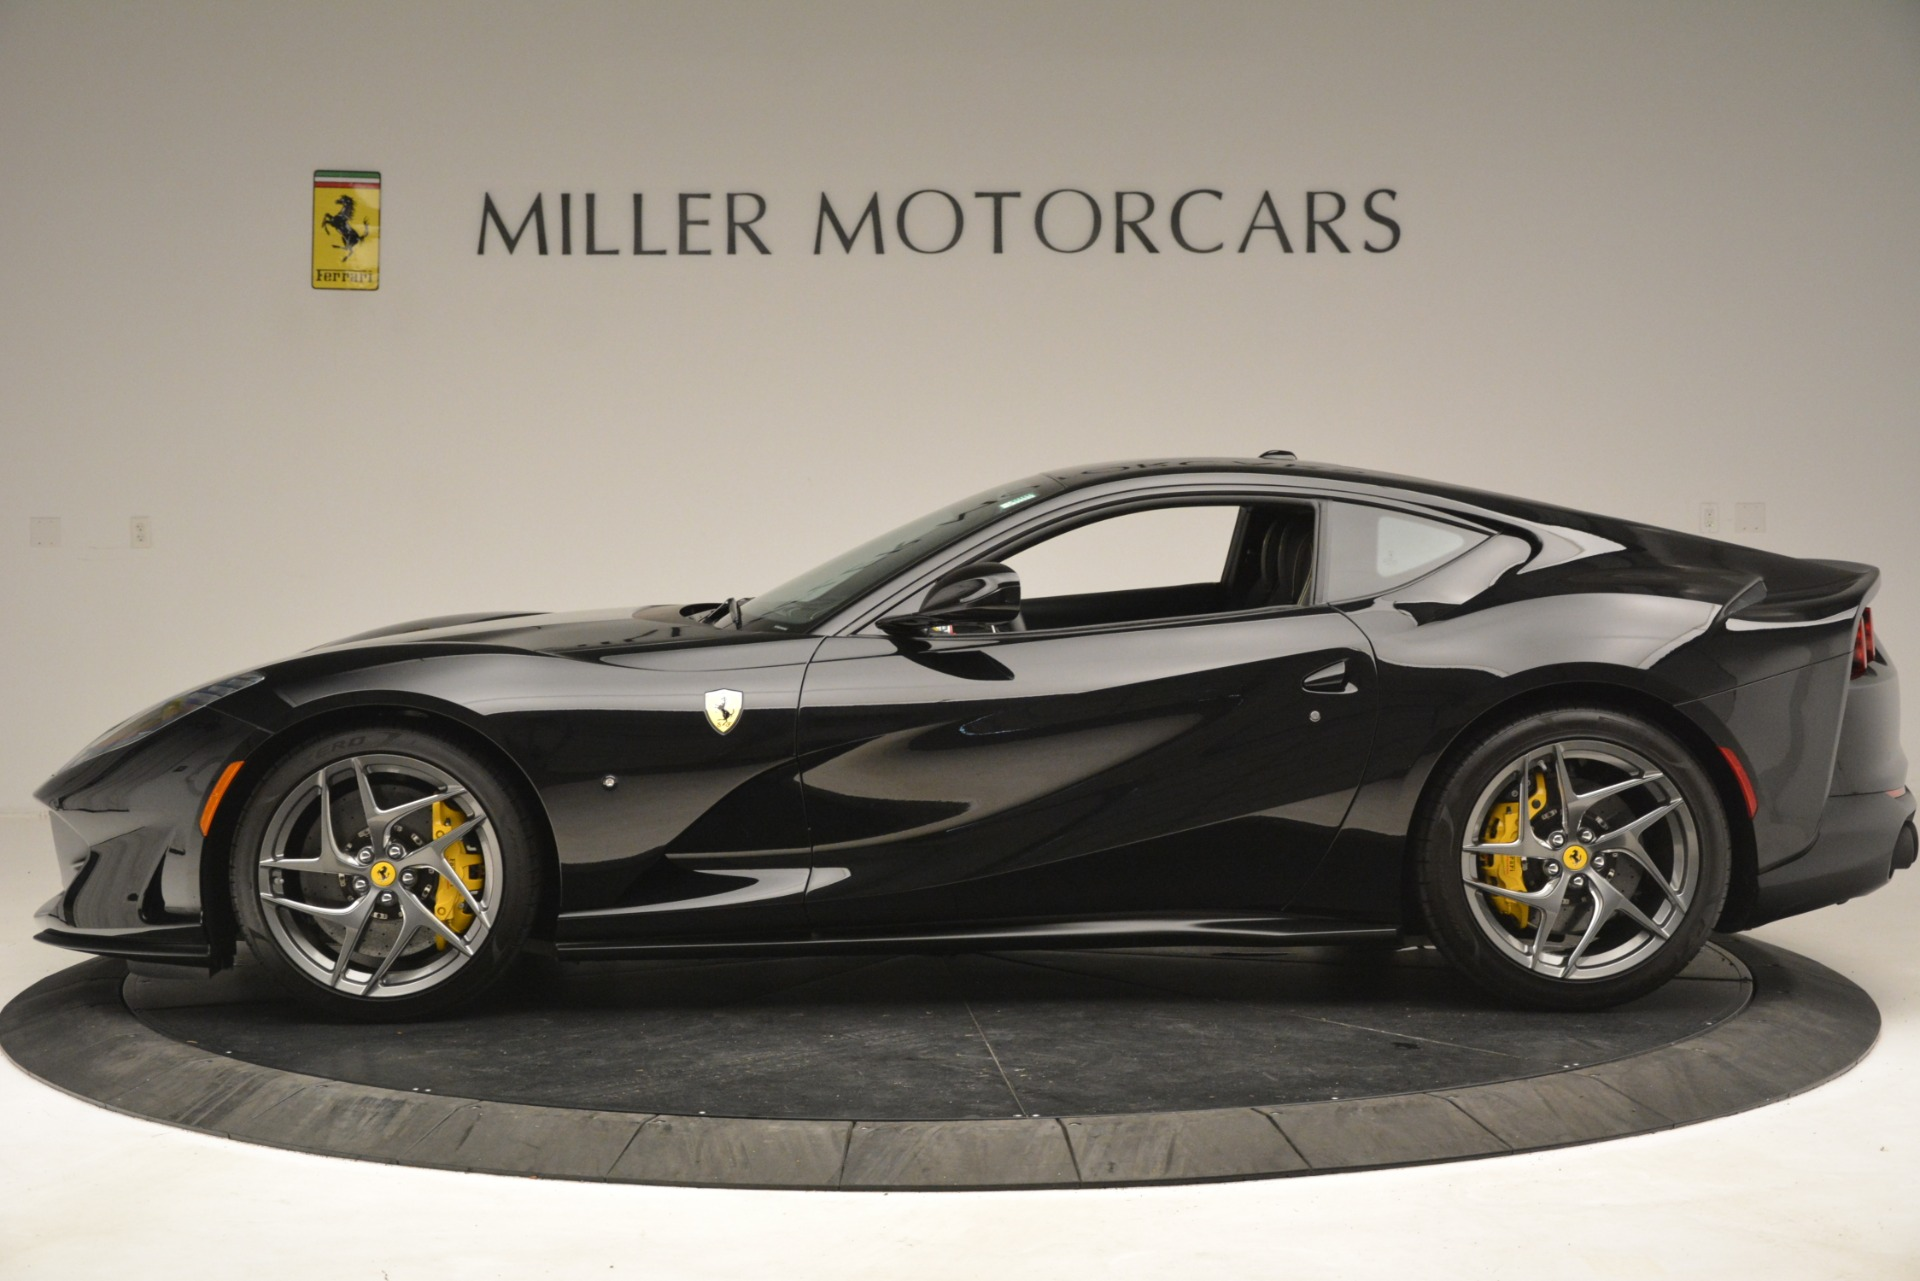 Pre Owned 2019 Ferrari 812 Superfast For Sale Special Pricing Mclaren Greenwich Stock 4568